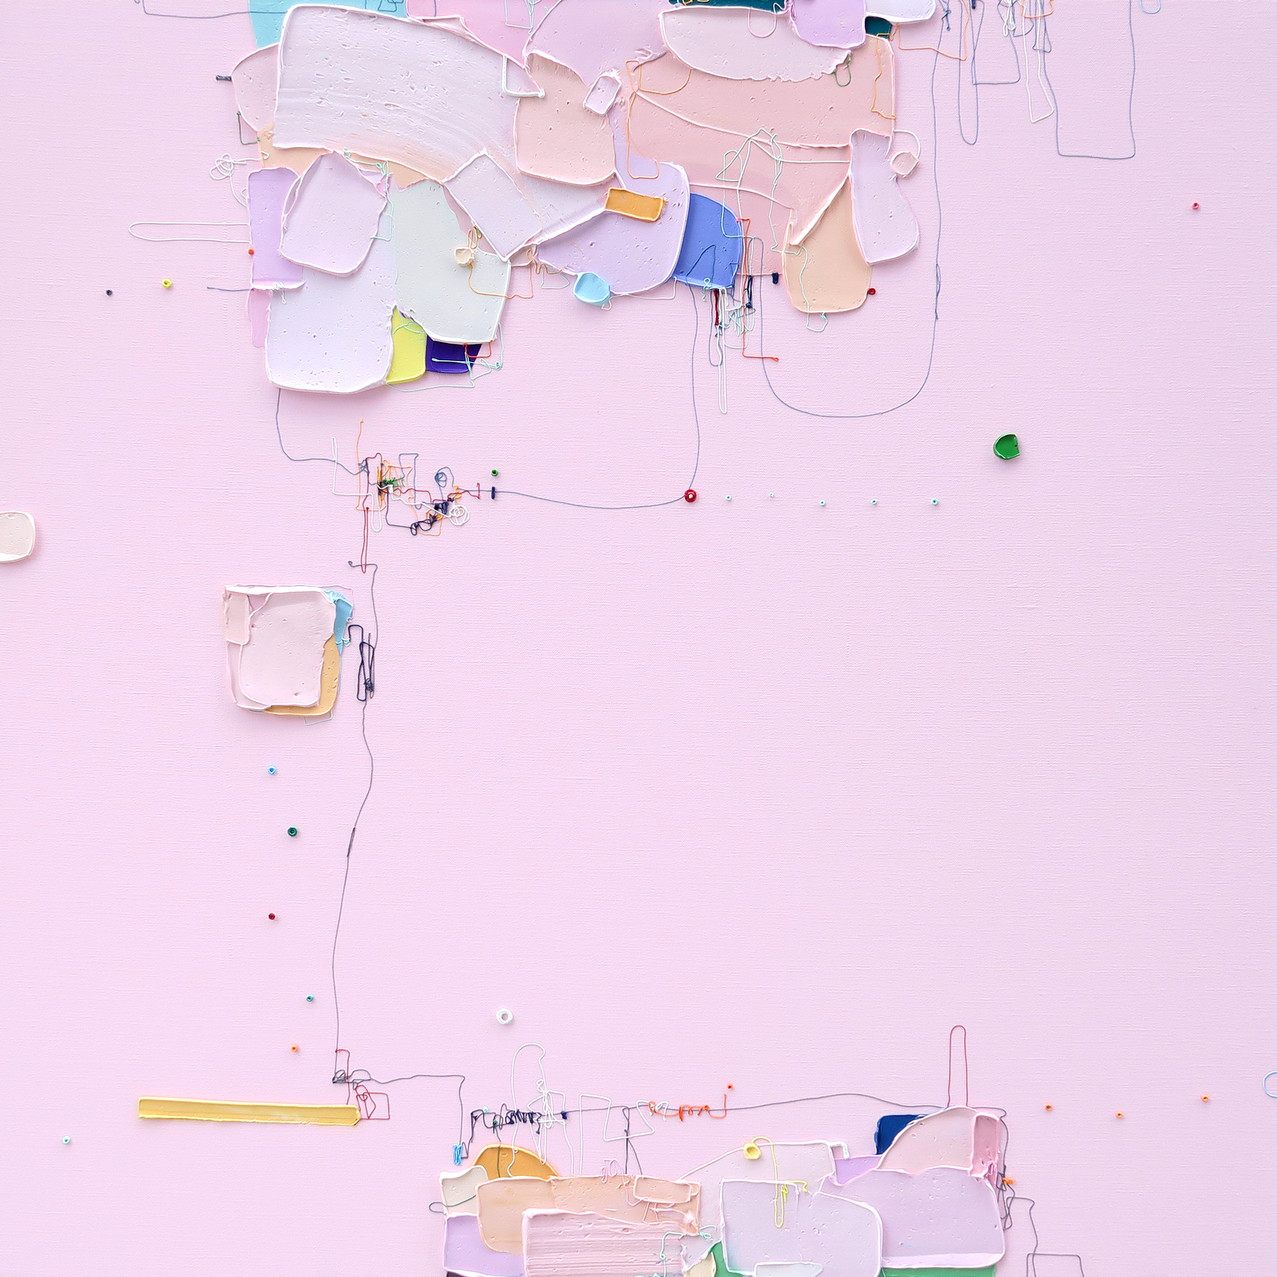 The Memory of the Unconscious 412, 91x91